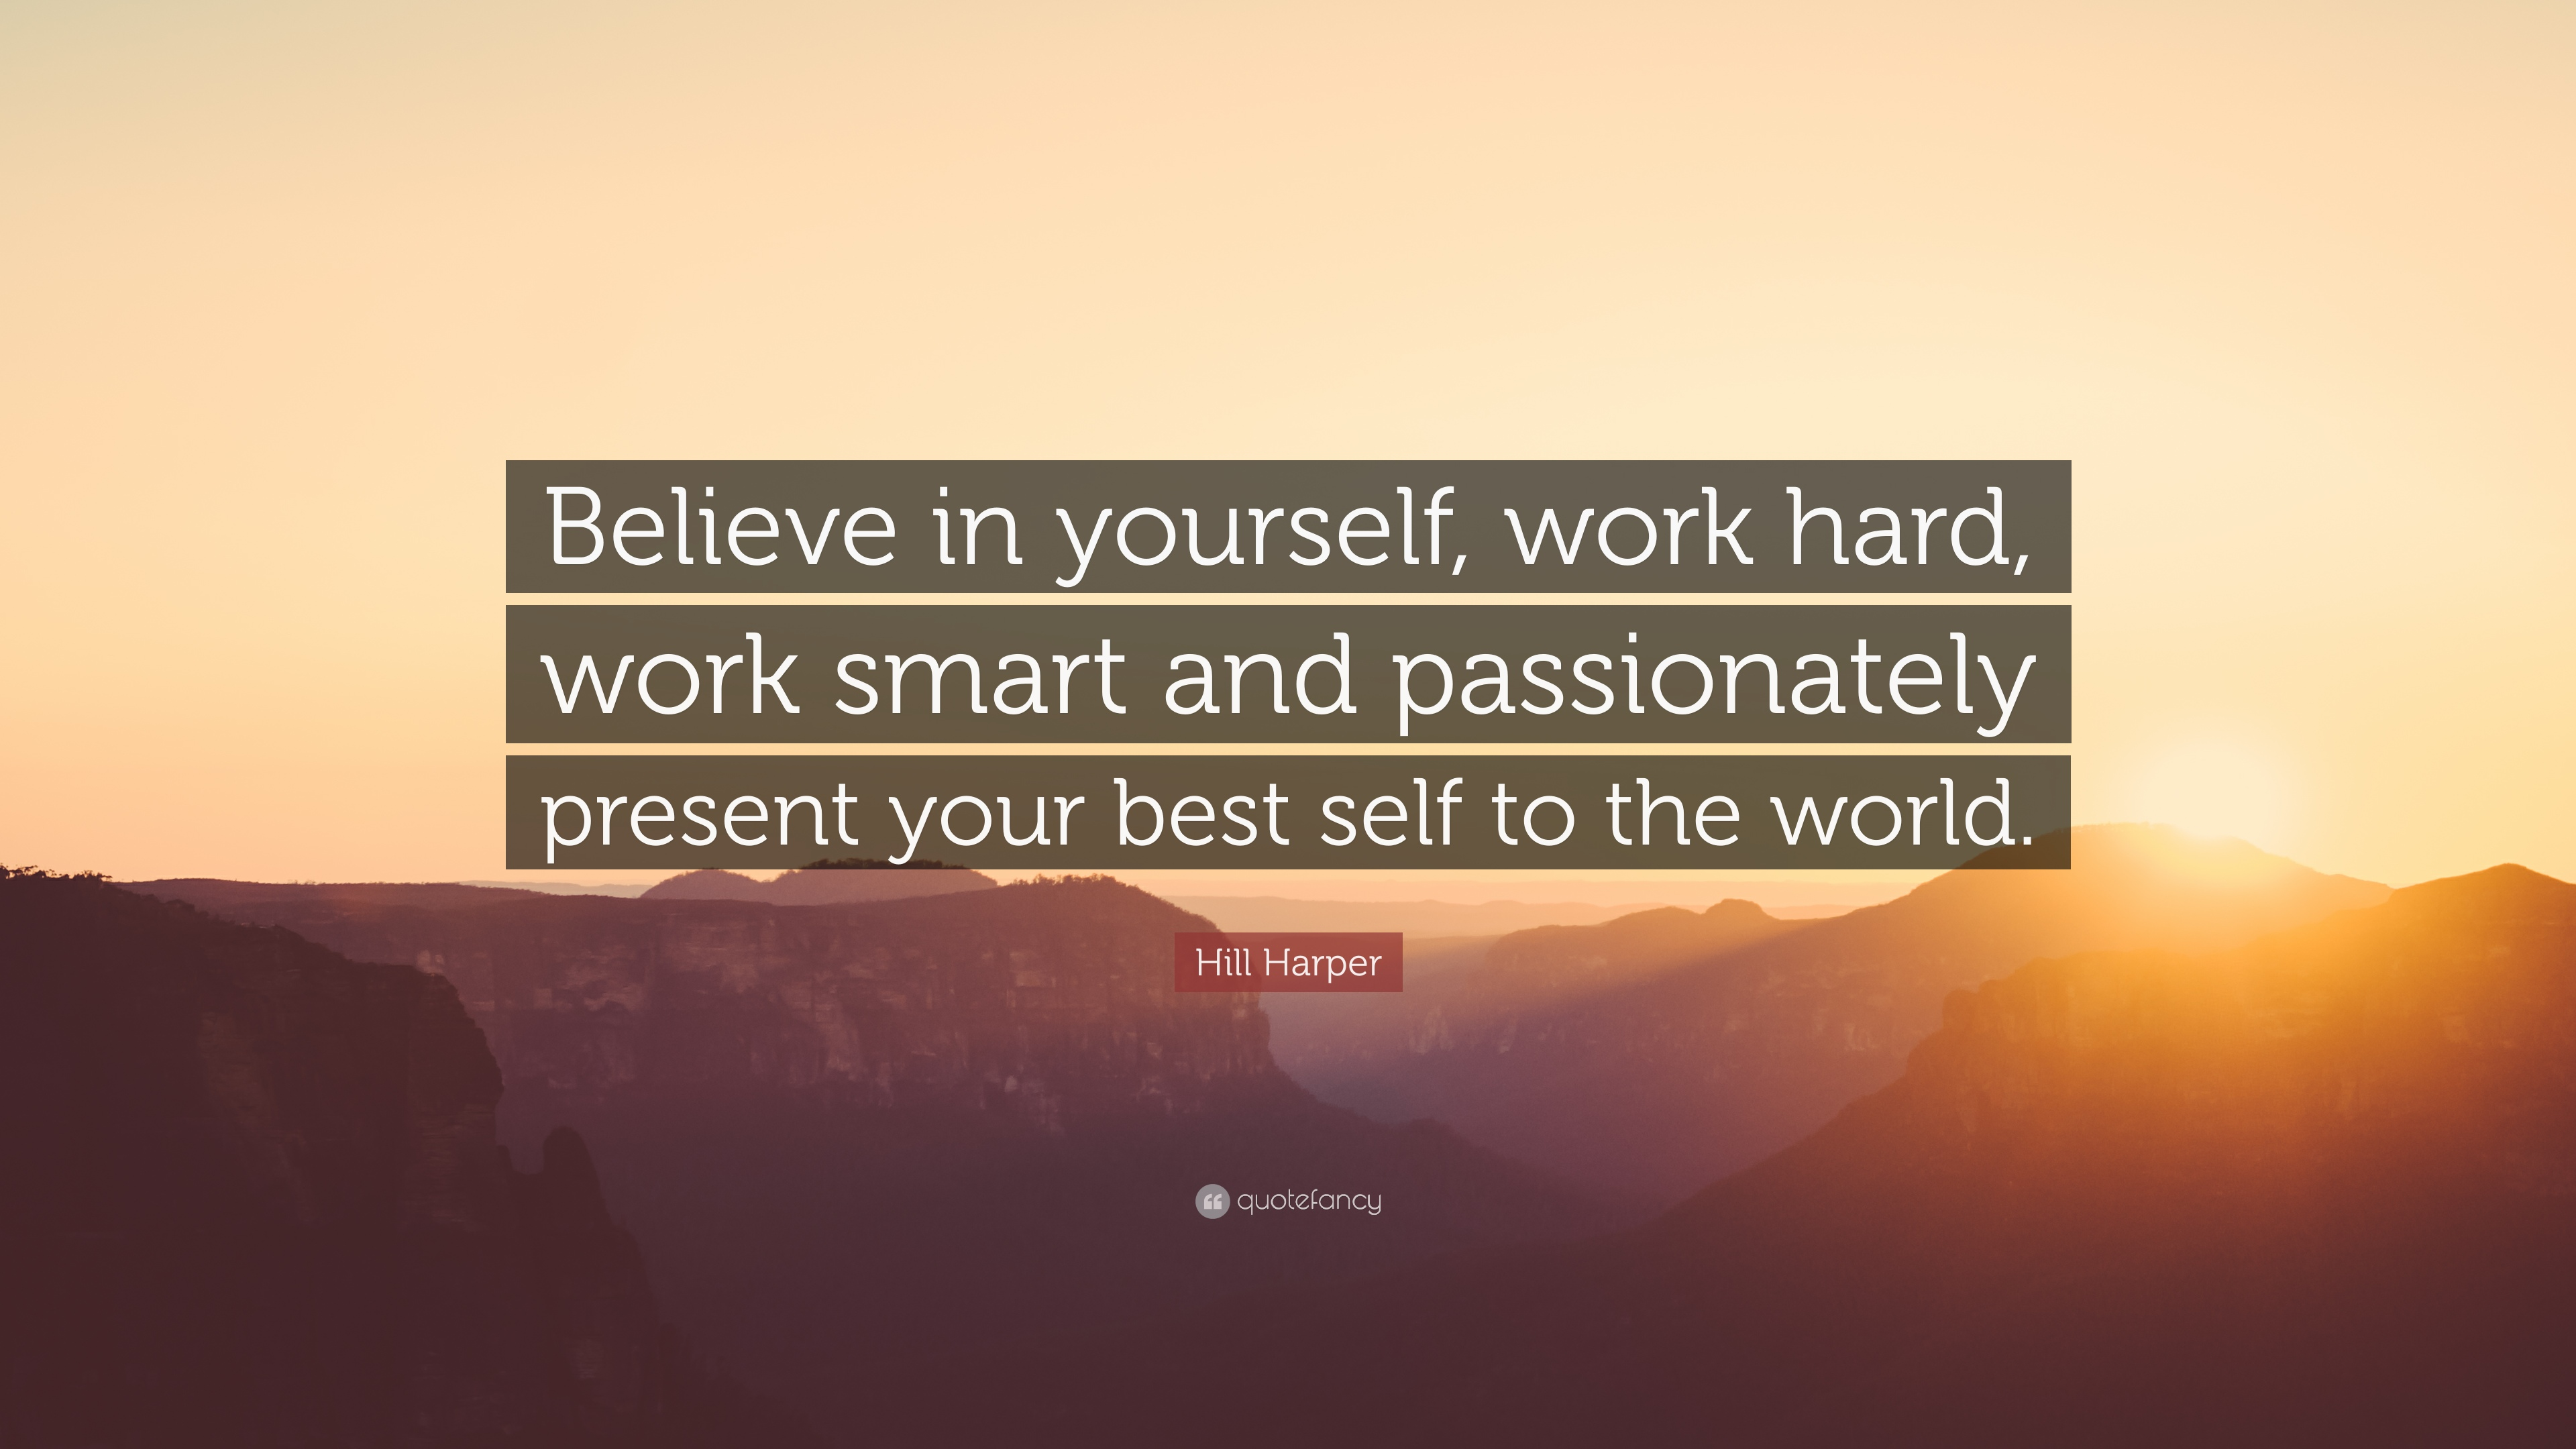 Quotes For Work Hard Work Quotes 40 Wallpapers  Quotefancy